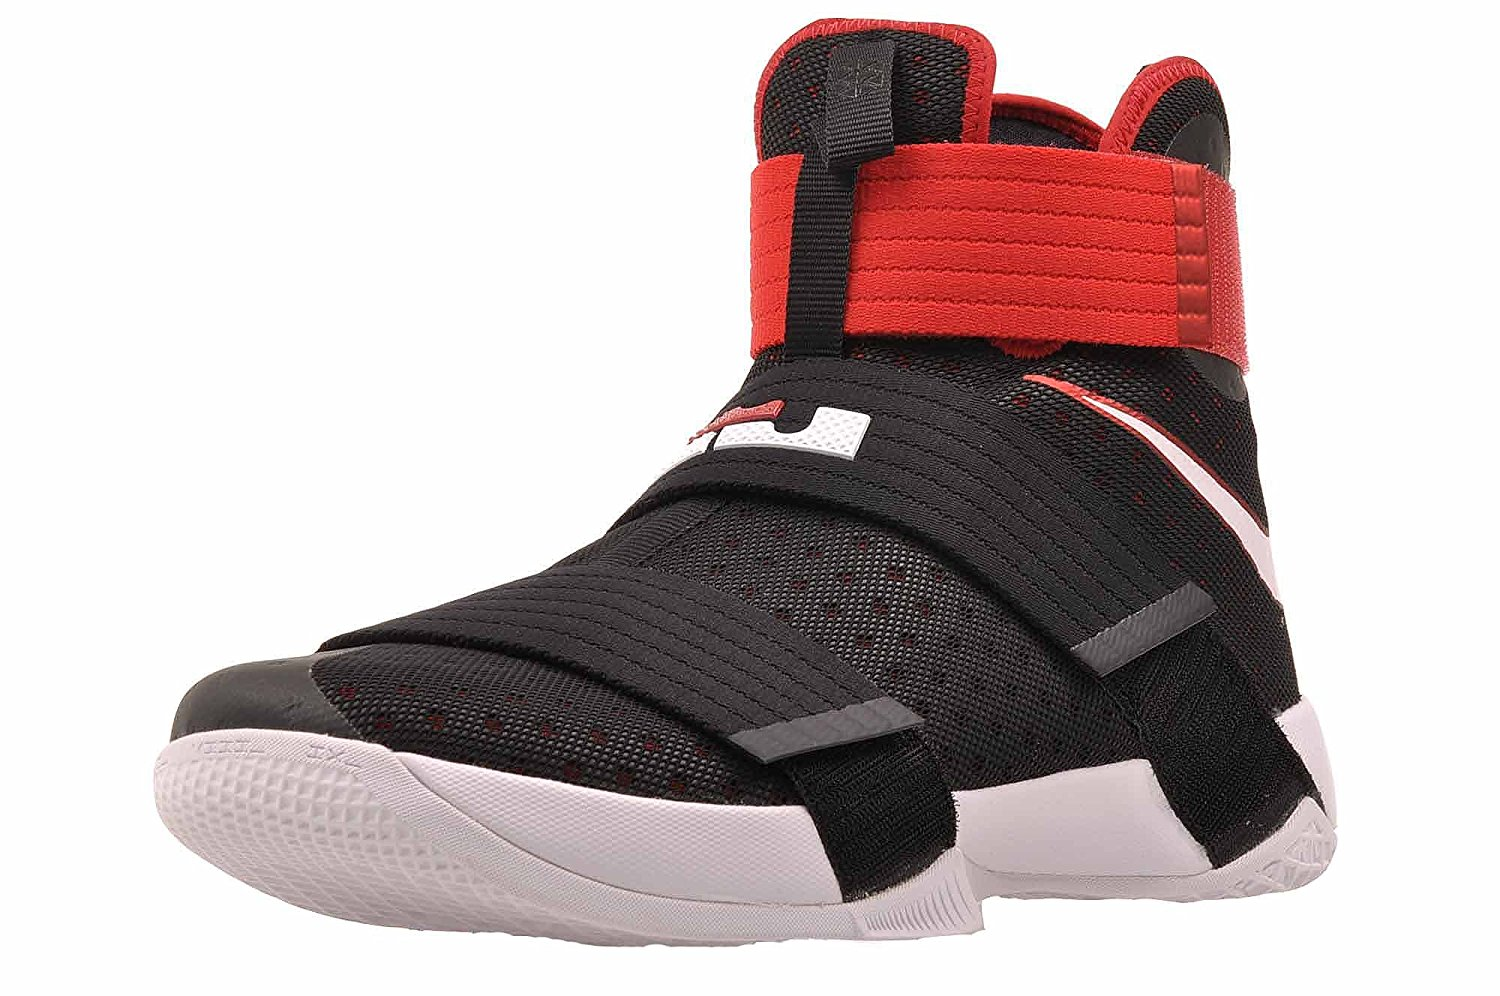 Nike Zoom Lebron Soldier 10 Tested